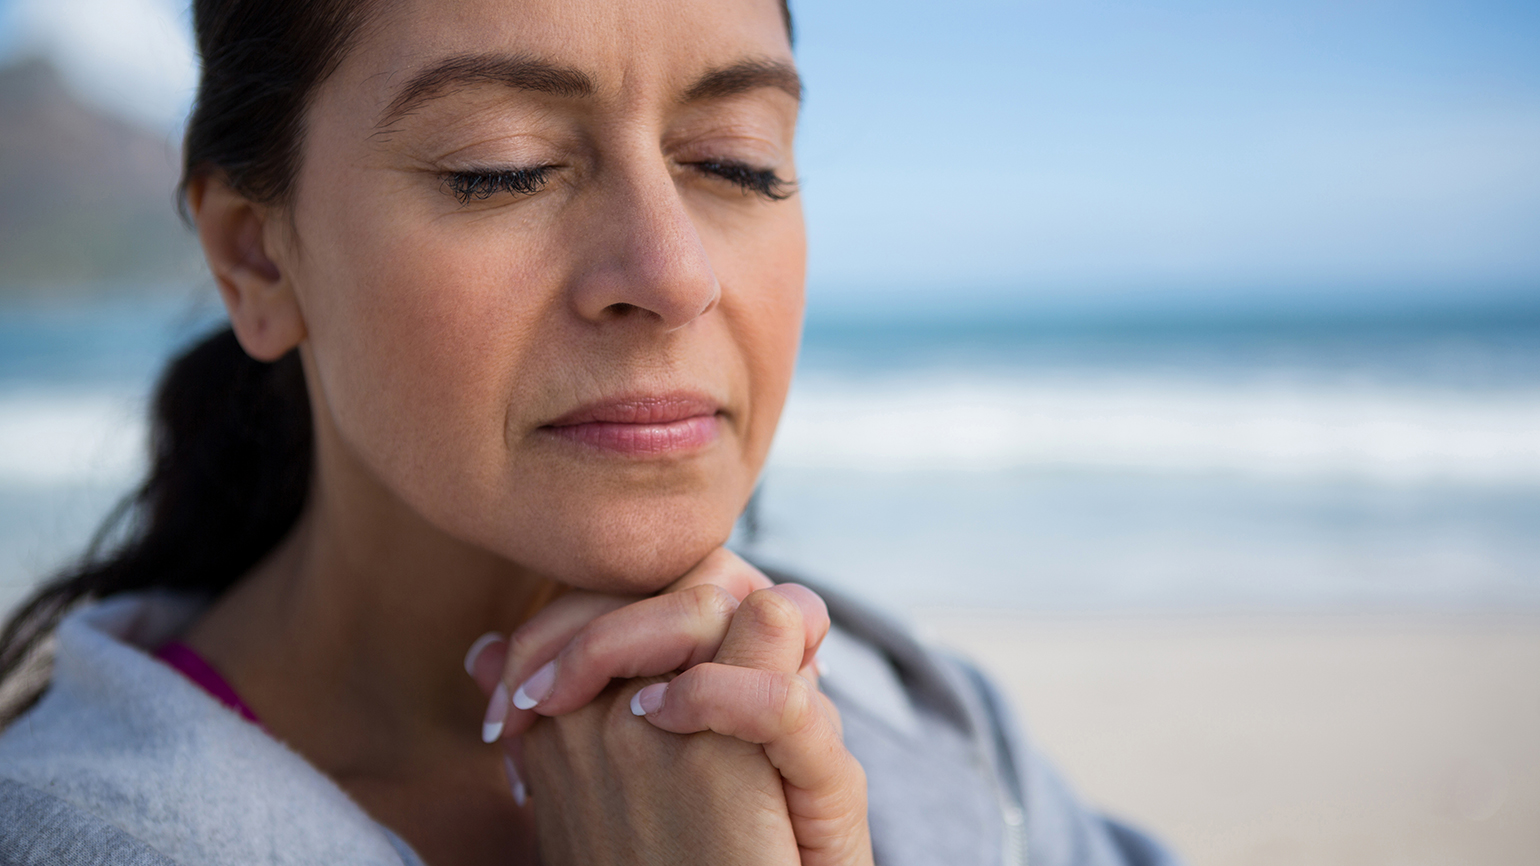 A mature woman clasps her hands in prayer